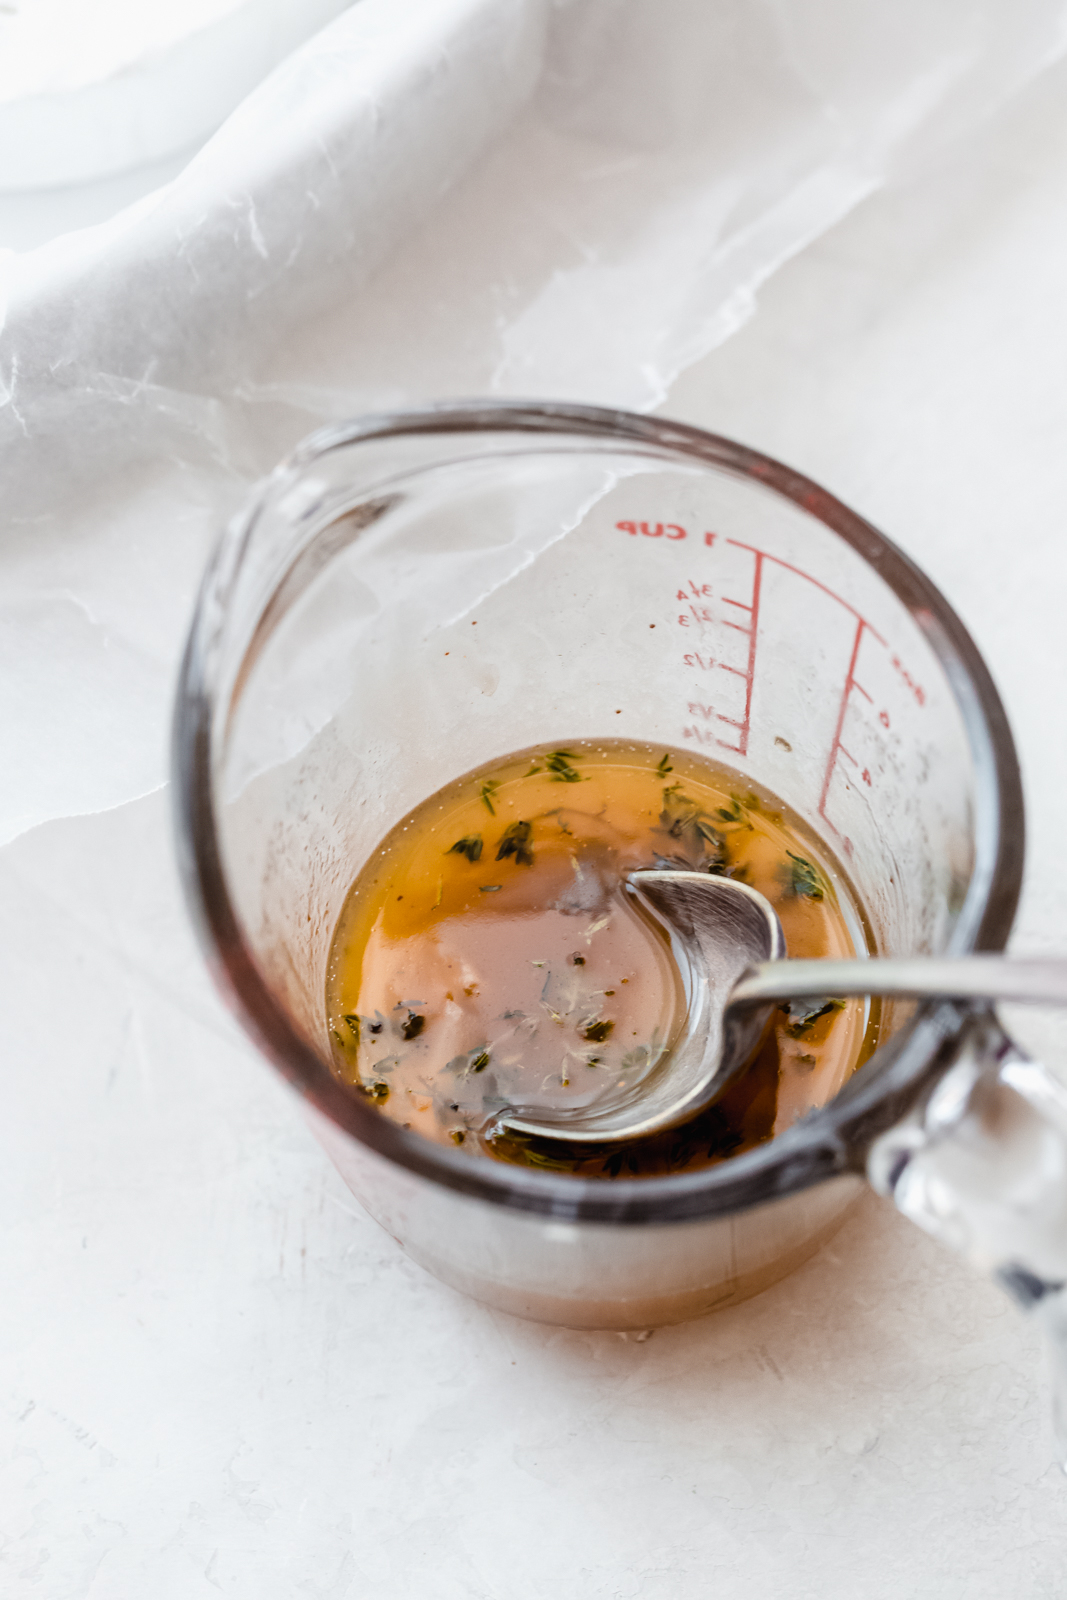 garlic herb and honey mixture in measuring glass for baked brie